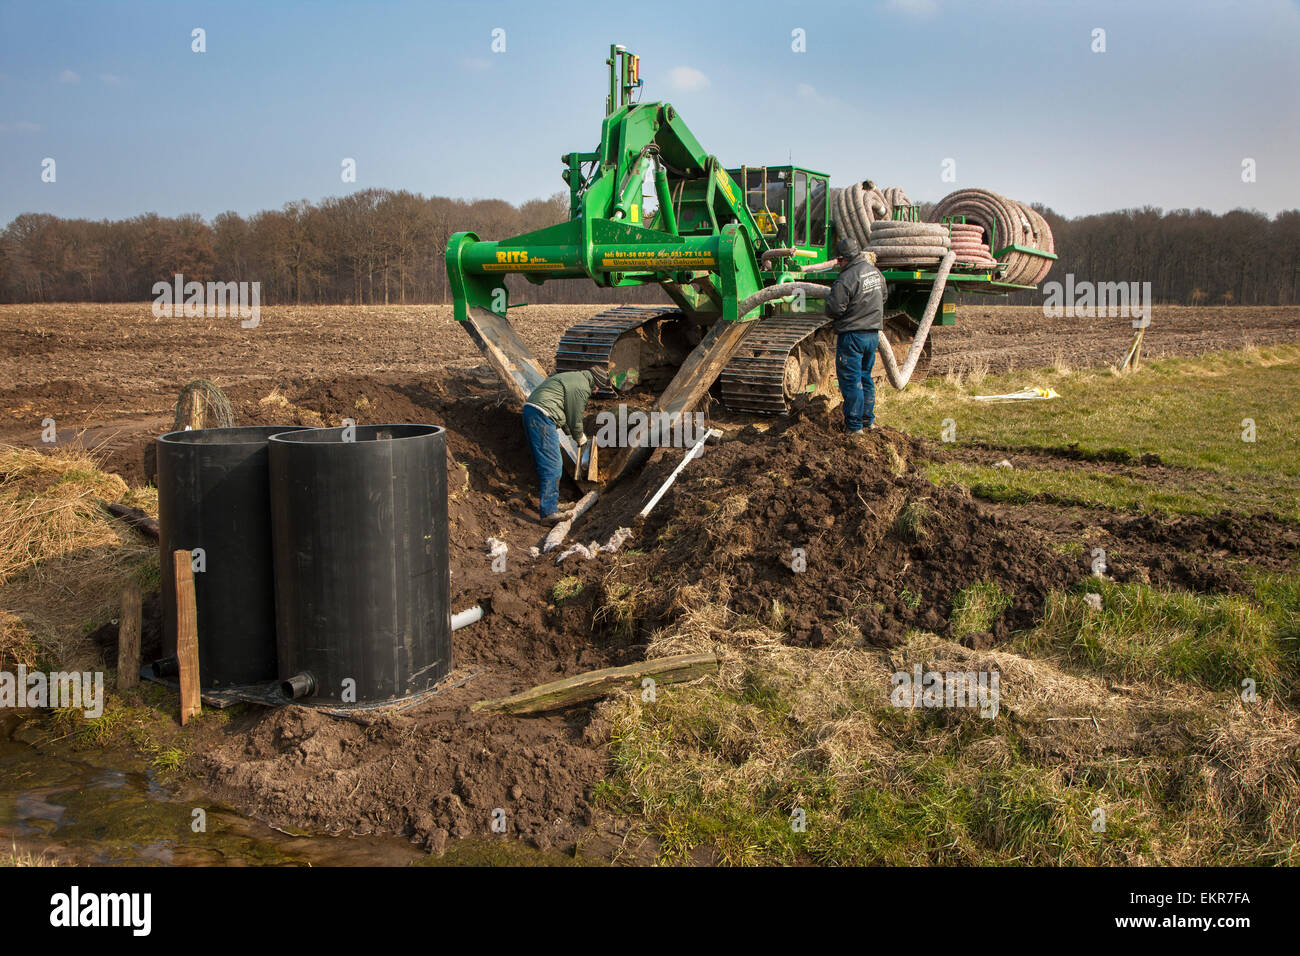 Contractors working with drainage trencher / tile plow on farmland - Stock Image